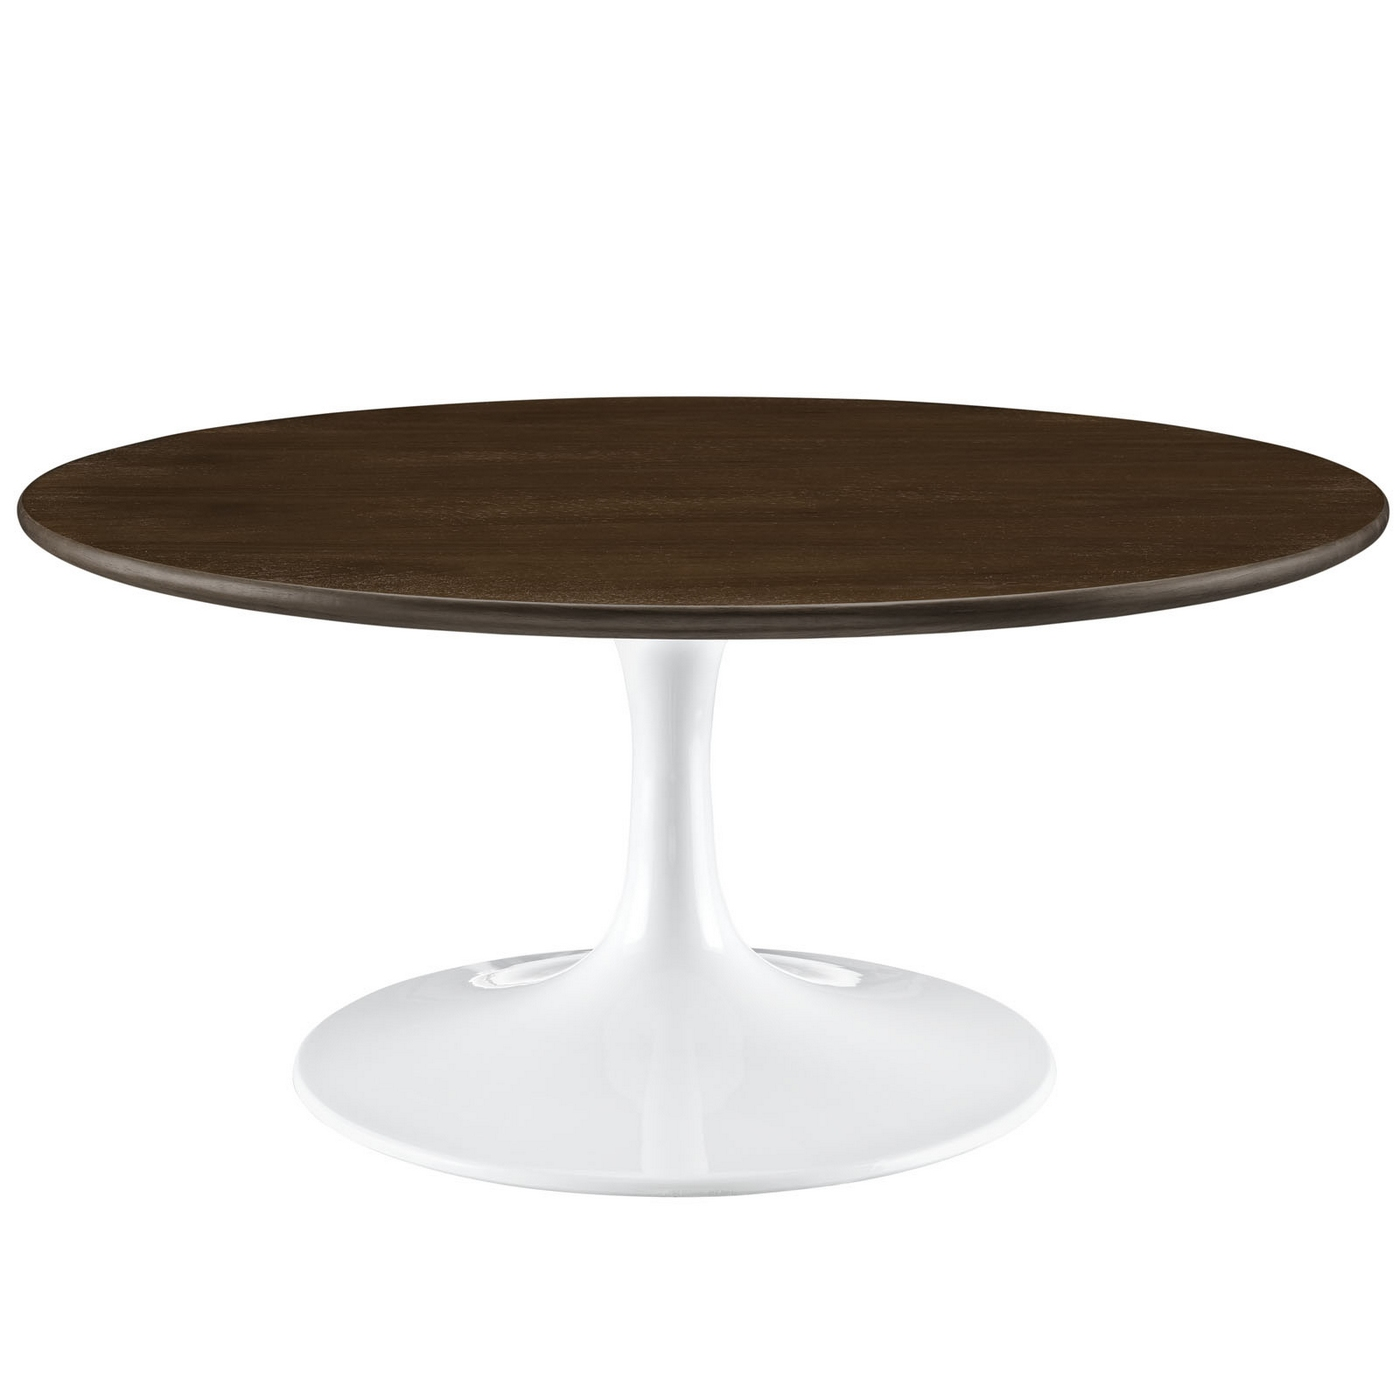 Lippa modern 36 round walnut coffee table with lacquered finish walnut Round coffee table modern